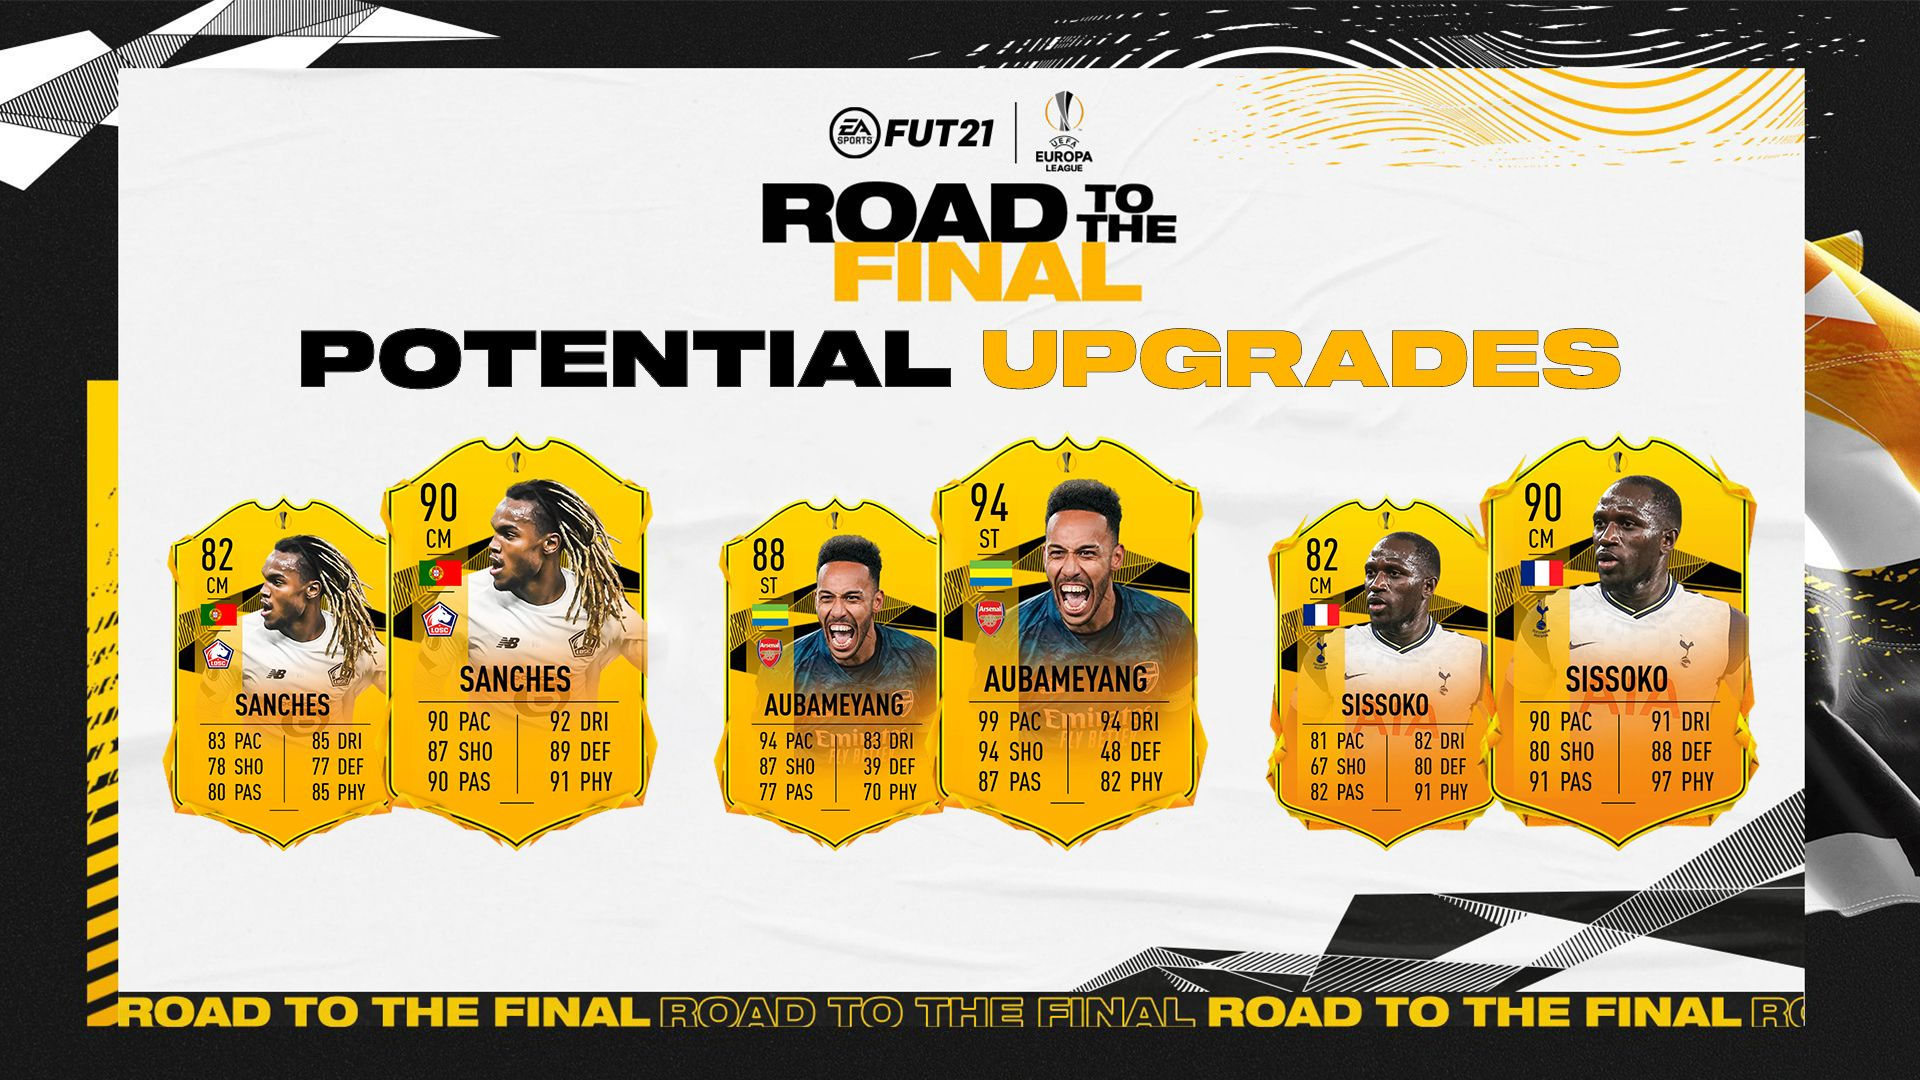 fifa 21 europa league road to the final upgrades how they work potential upgrades for fifa 21 europa league road to the final